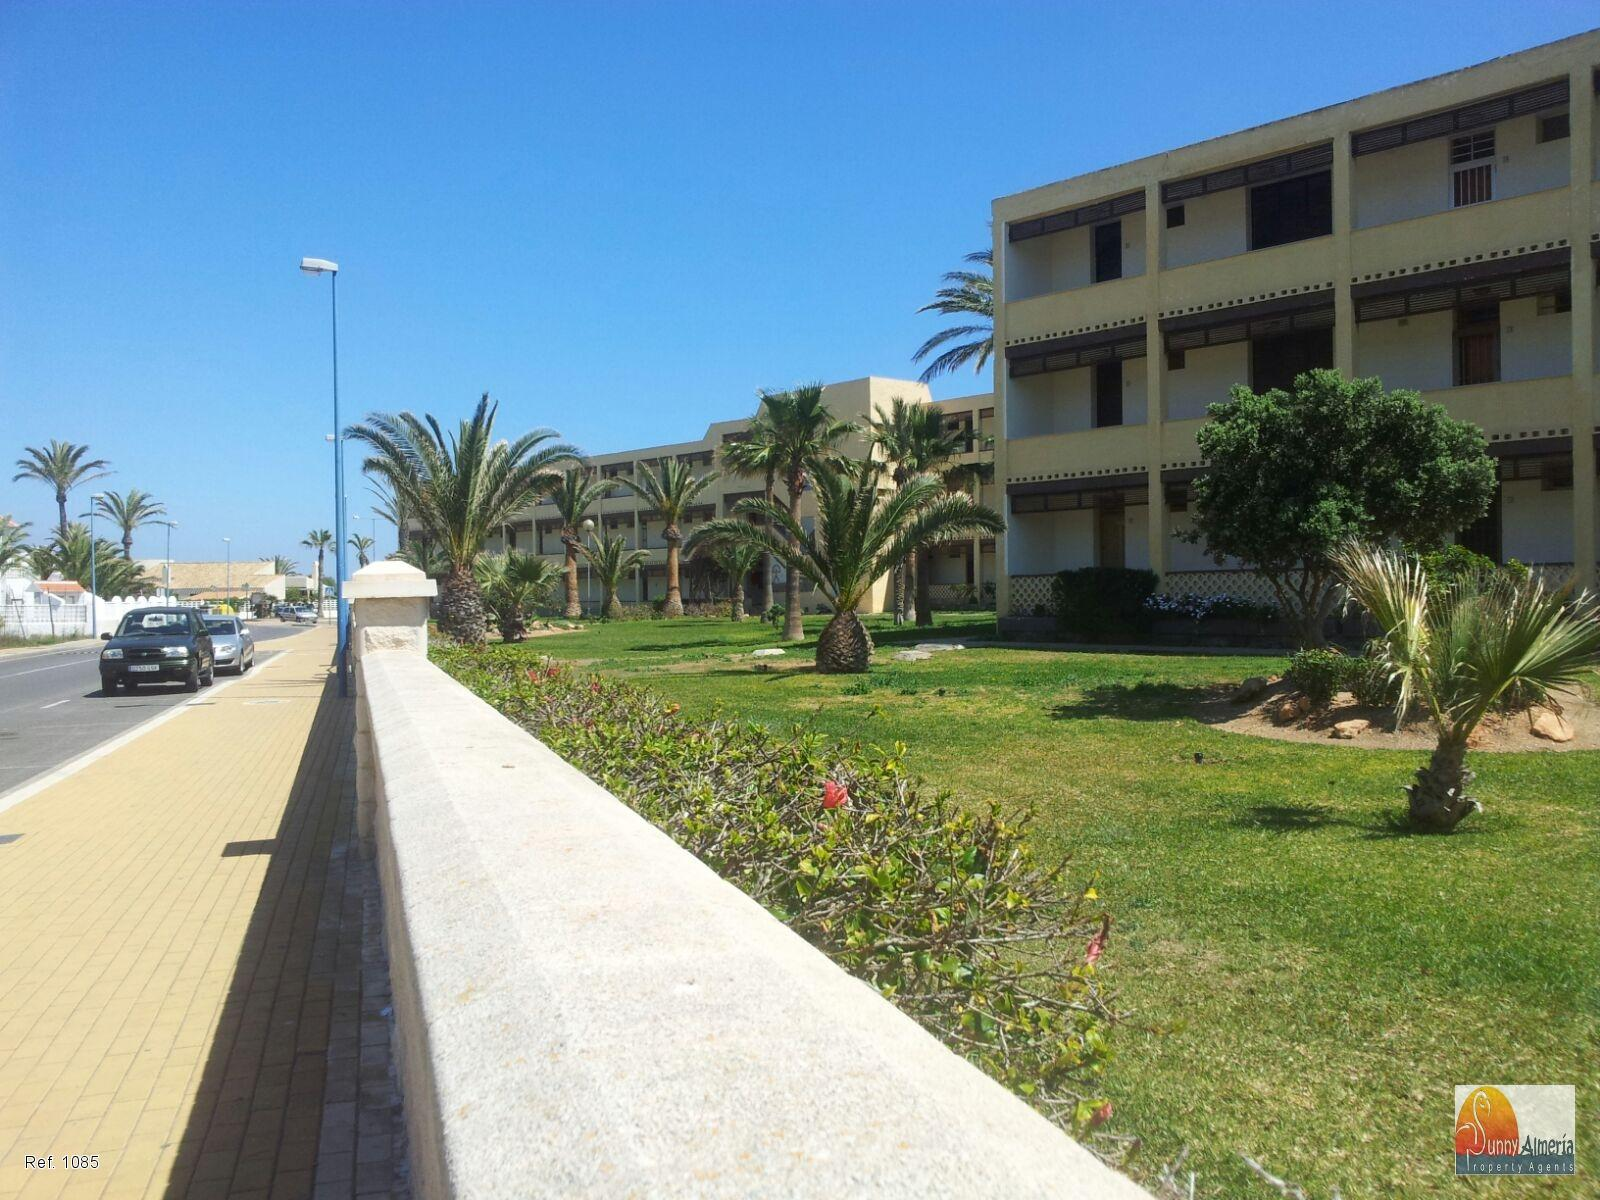 Studio Flat for rent in Avenida las Gaviotas 13-1 (Roquetas de Mar), 450 €/month